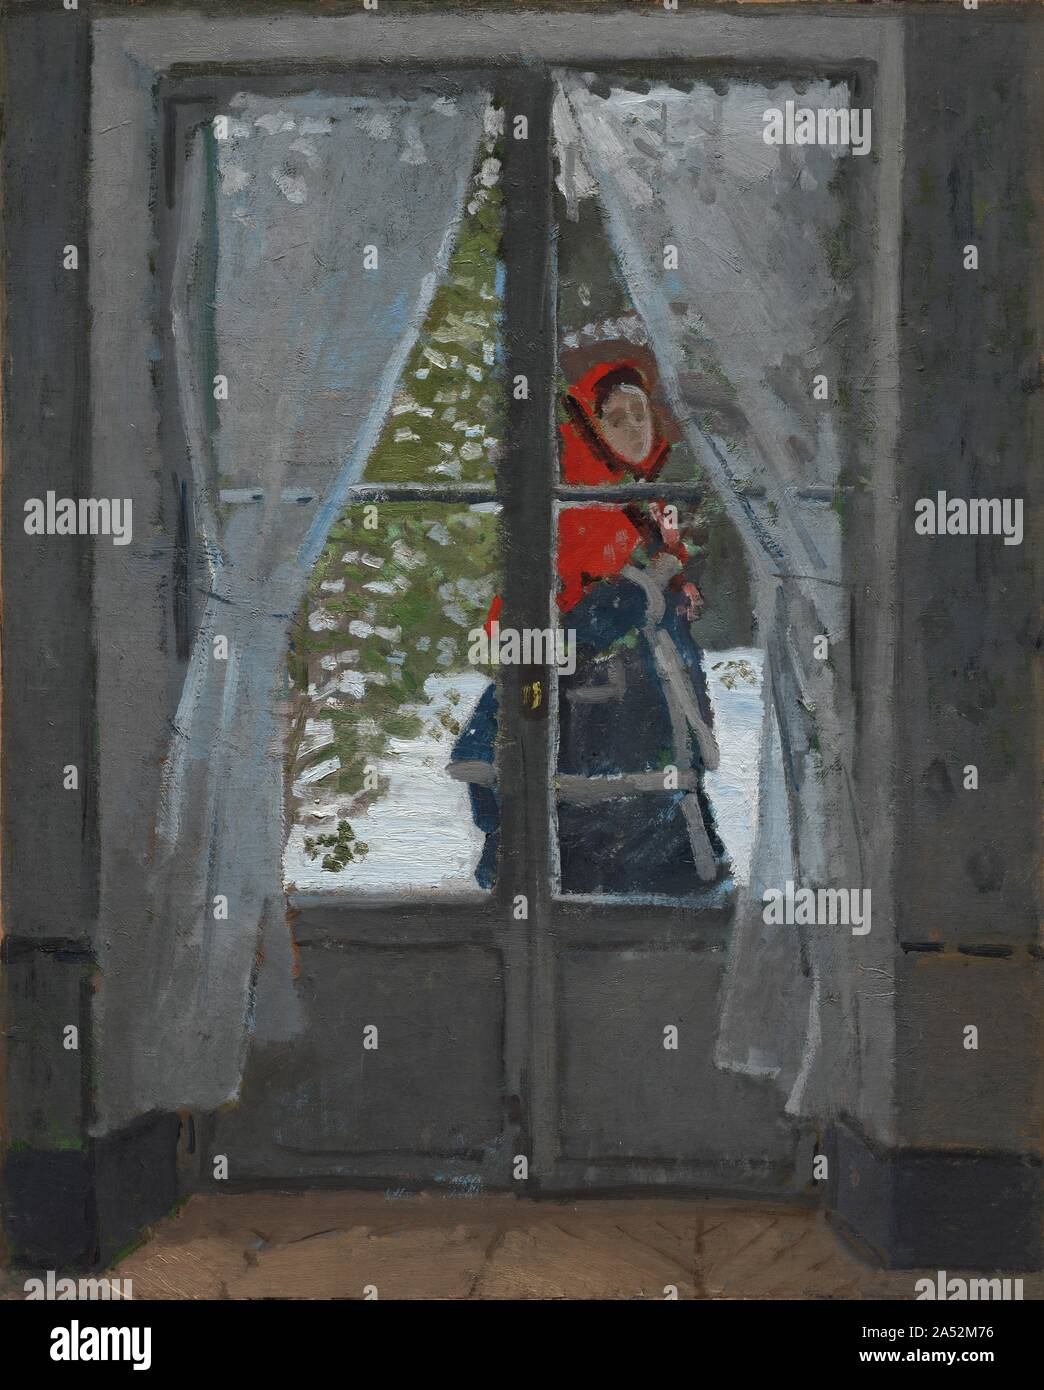 The Red Kerchief, c. 1868-73. In its early stages, this composition contained two figures seated inside the room on either side of the window. Monet radically altered the composition by painting over the figures. They were replaced by an image of the artist's favorite model---his wife Camille, who passes outside the window in a red cape. Intense light---reflected from the snow-covered landscape---floods the room, obliterating details along the walls and floor. The off-center window frame and the blurriness achieved through sketchy brushstrokes suggest the scanning movement of the artist's eye Stock Photo